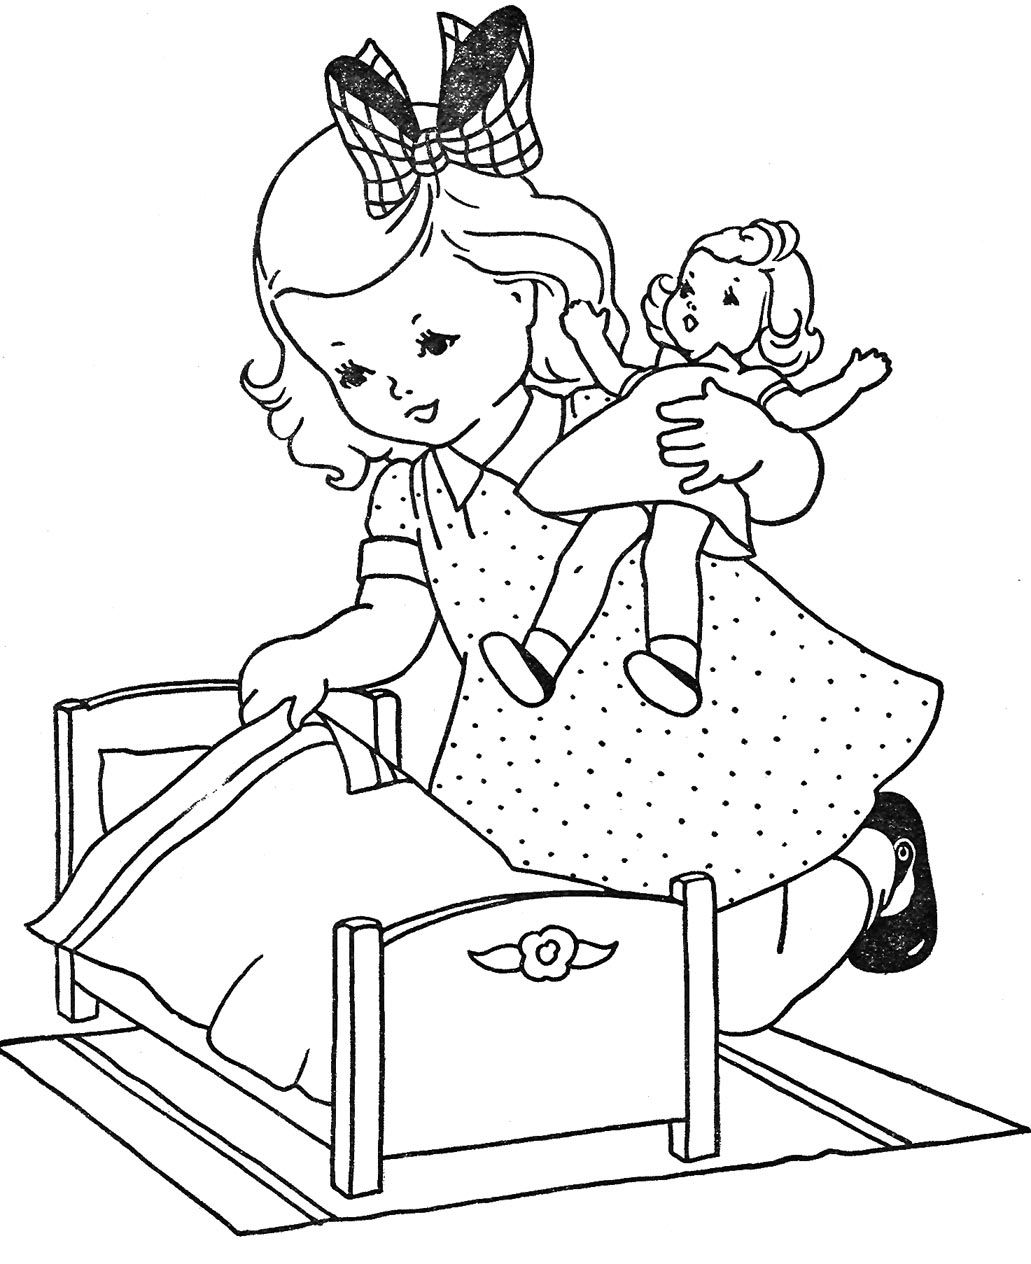 coloring pages for kids to print disney coloring pages to download and print for free print pages to for coloring kids